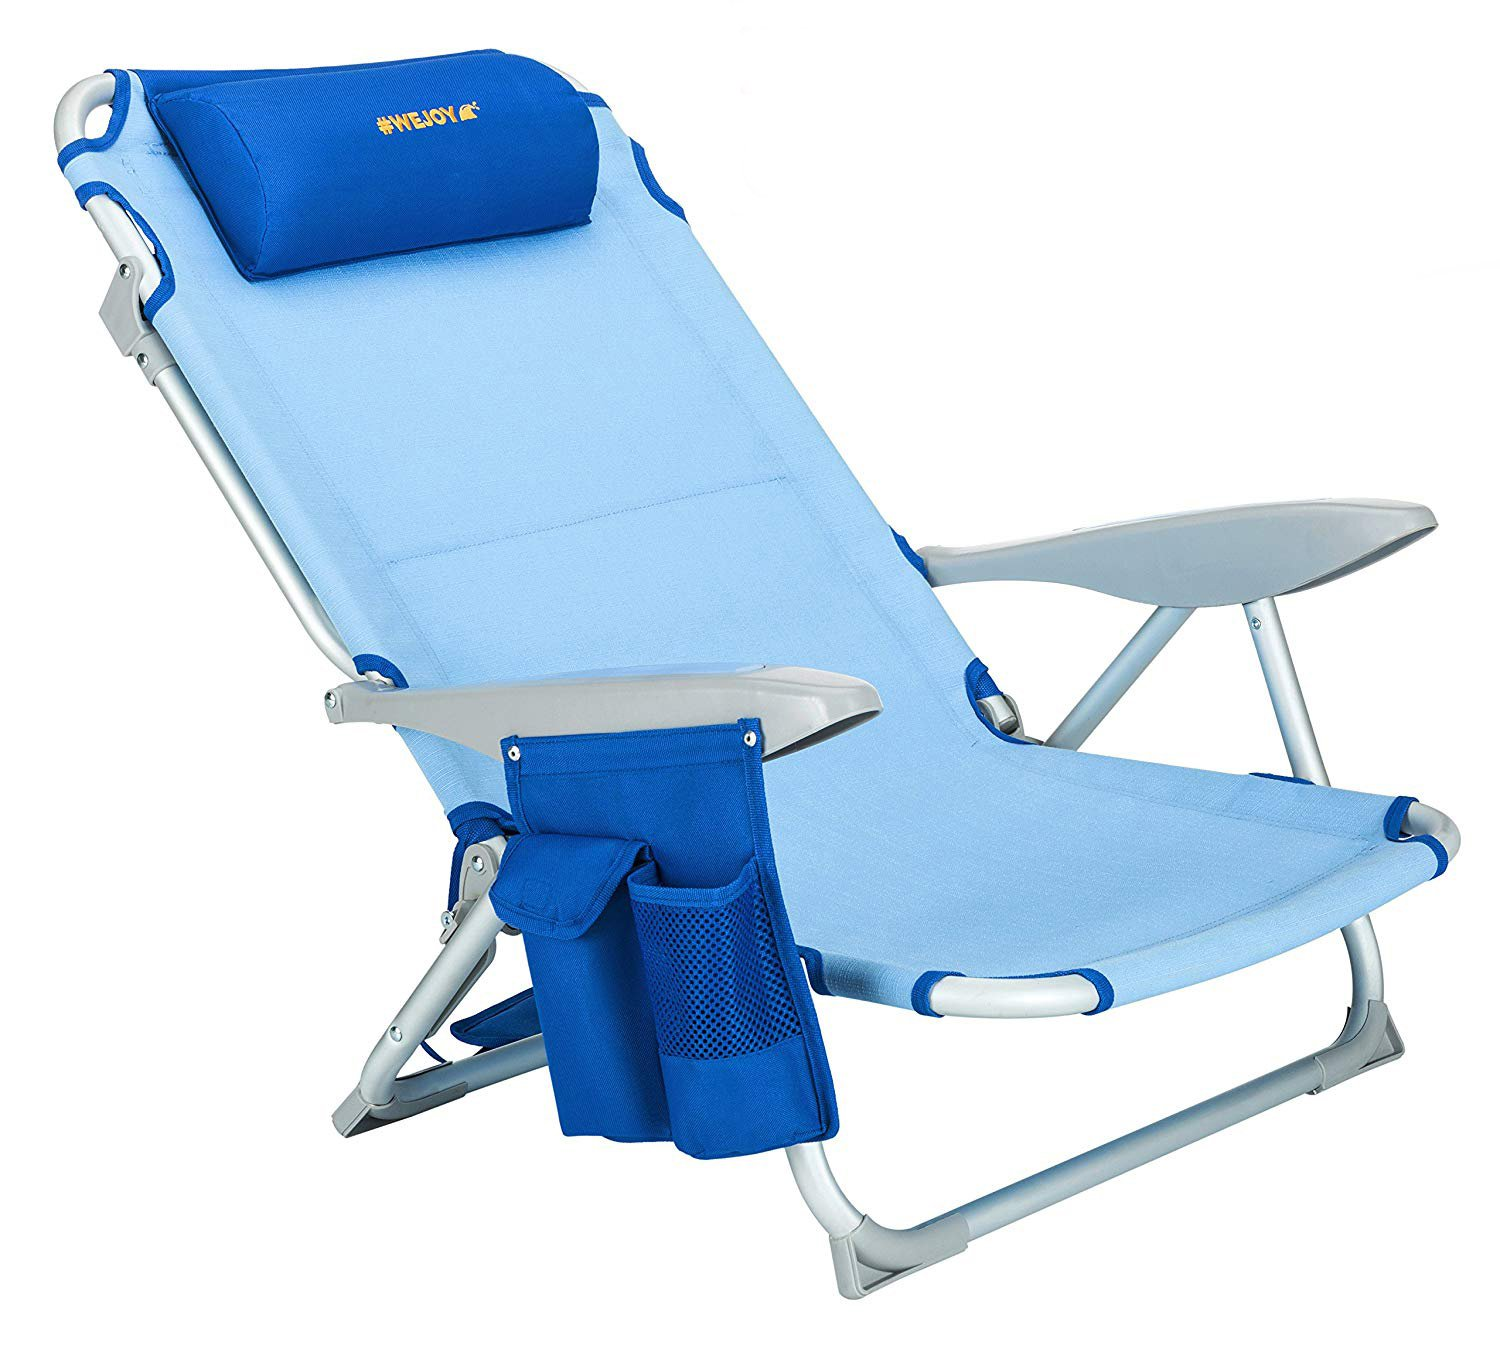 WEJOY Aluminum Lightweight 4 Position Lay Flat Folding Camping Beach Chair  with Shoulder Strap Cup Holder Pocket Armrest and Headrest 16d95b348a0b